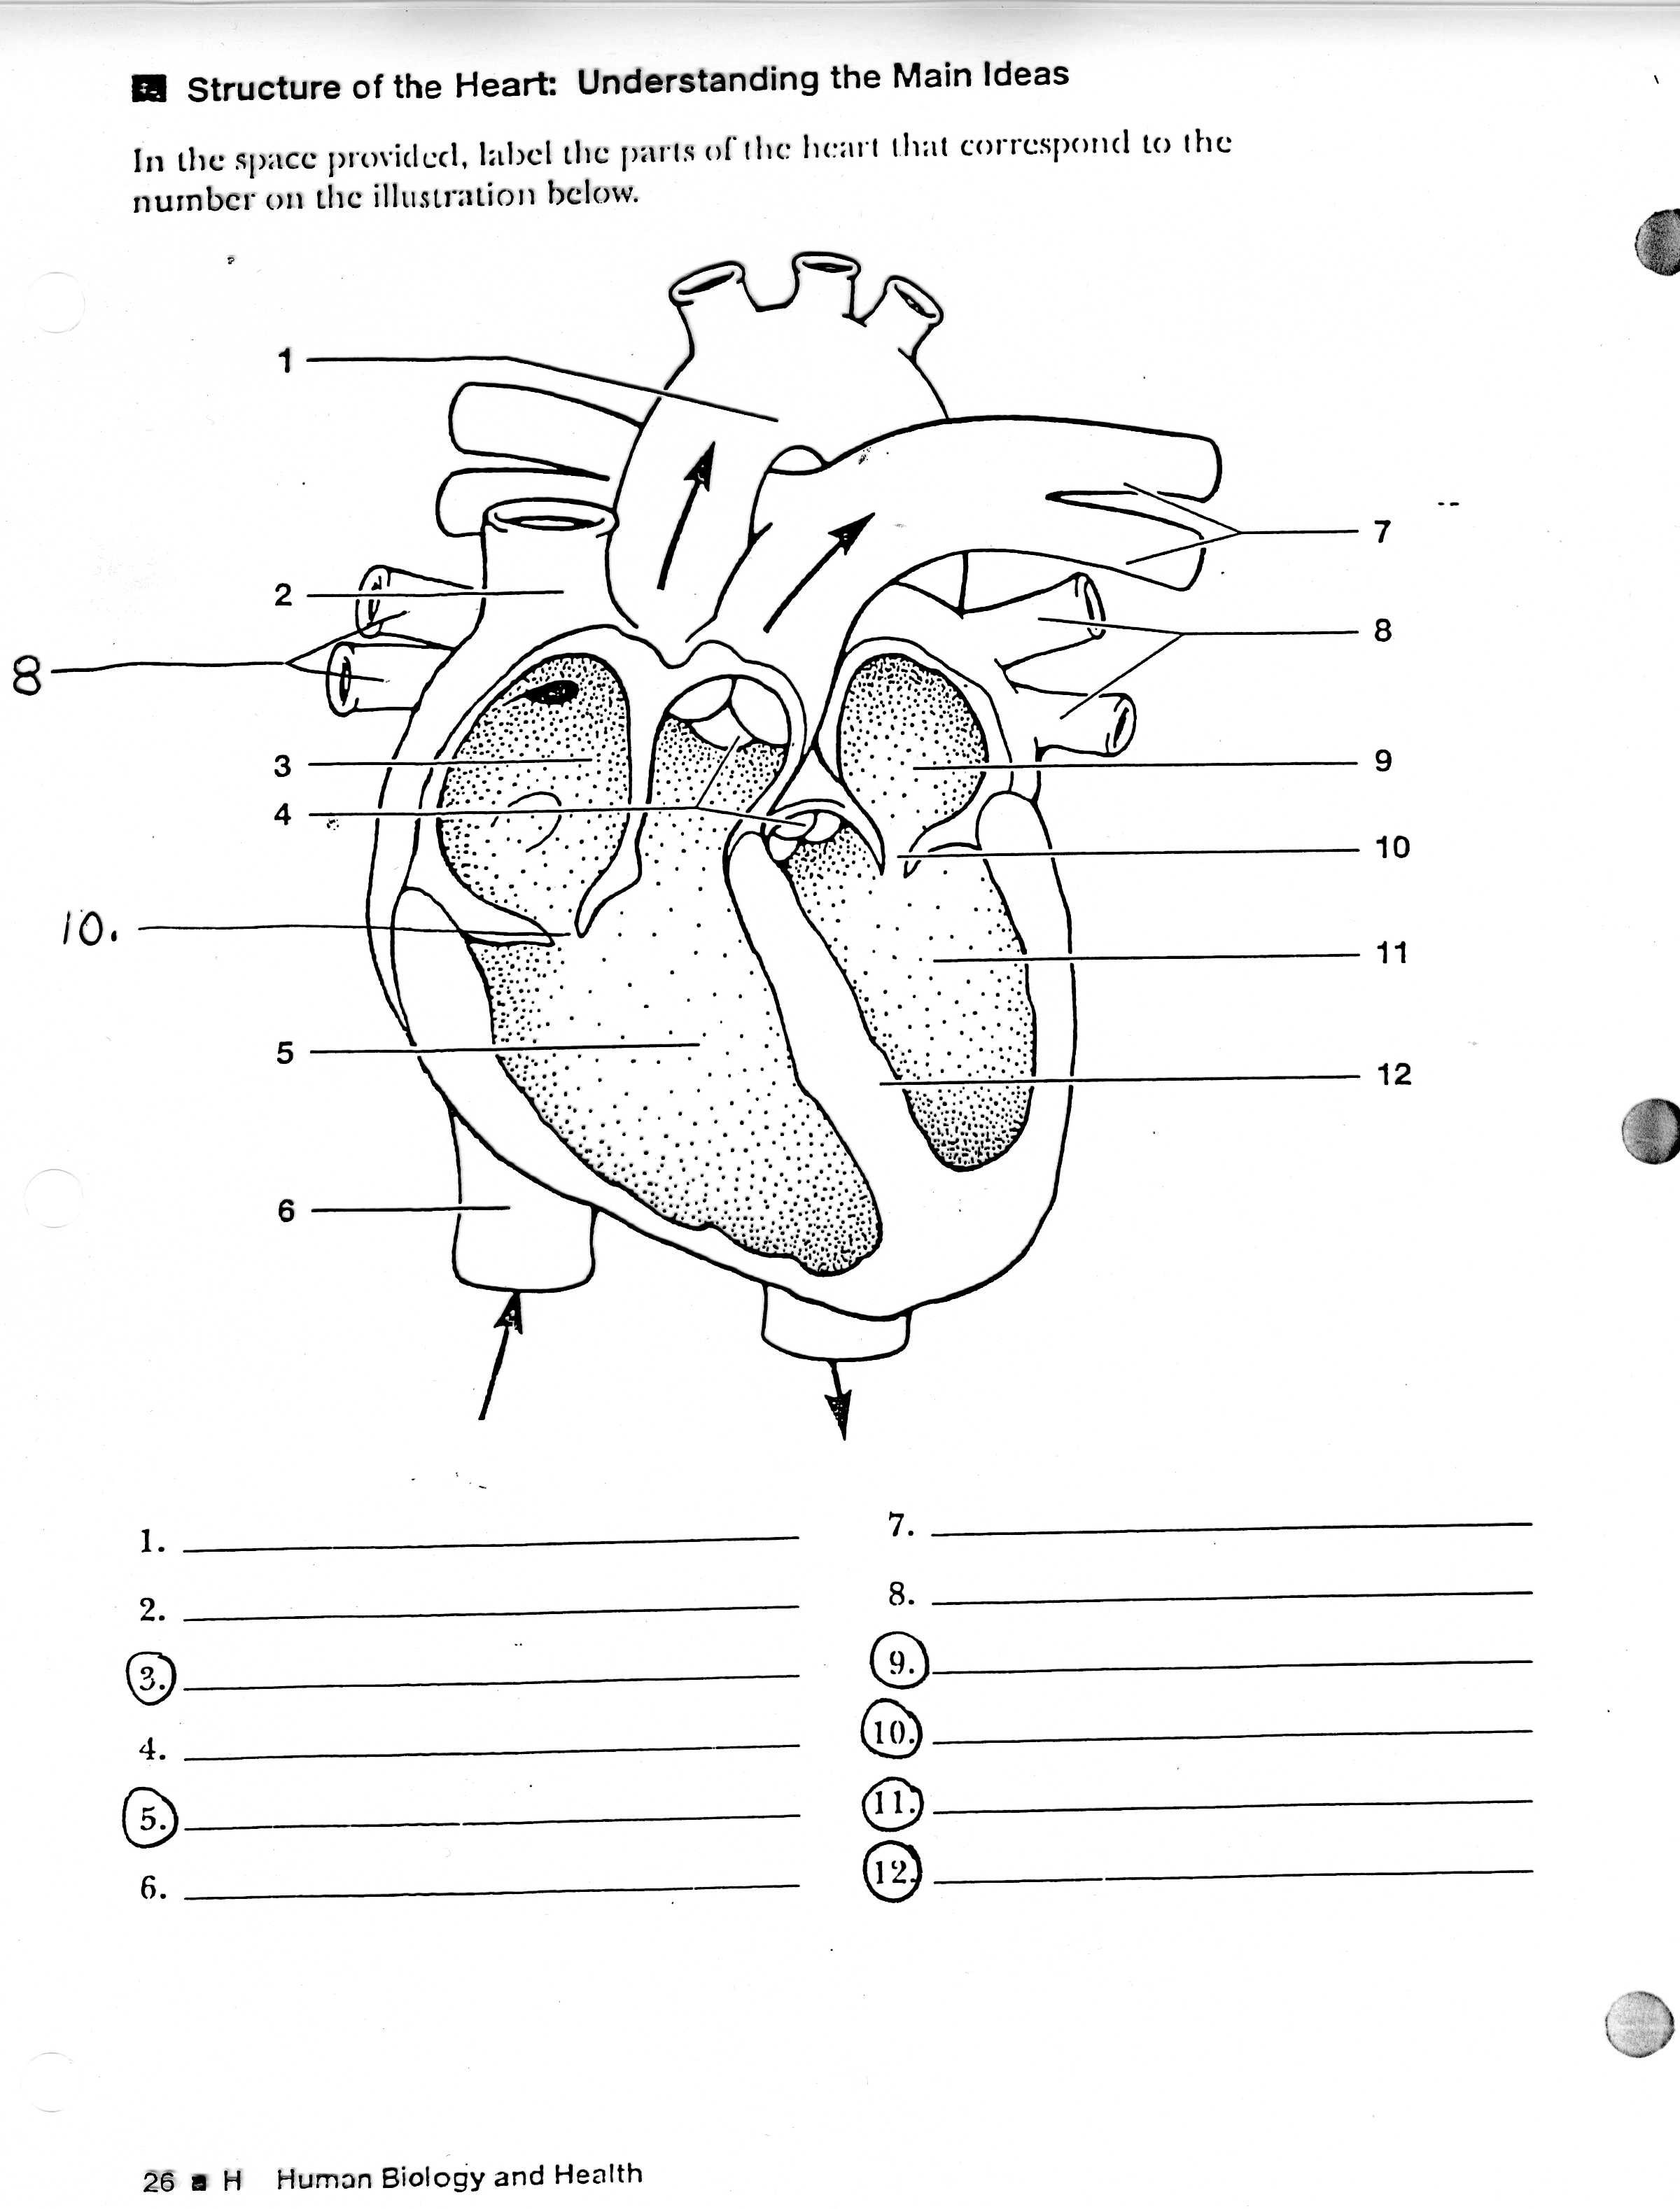 Heart Diagram Fill In The Blank - Auto Electrical Wiring Diagram •